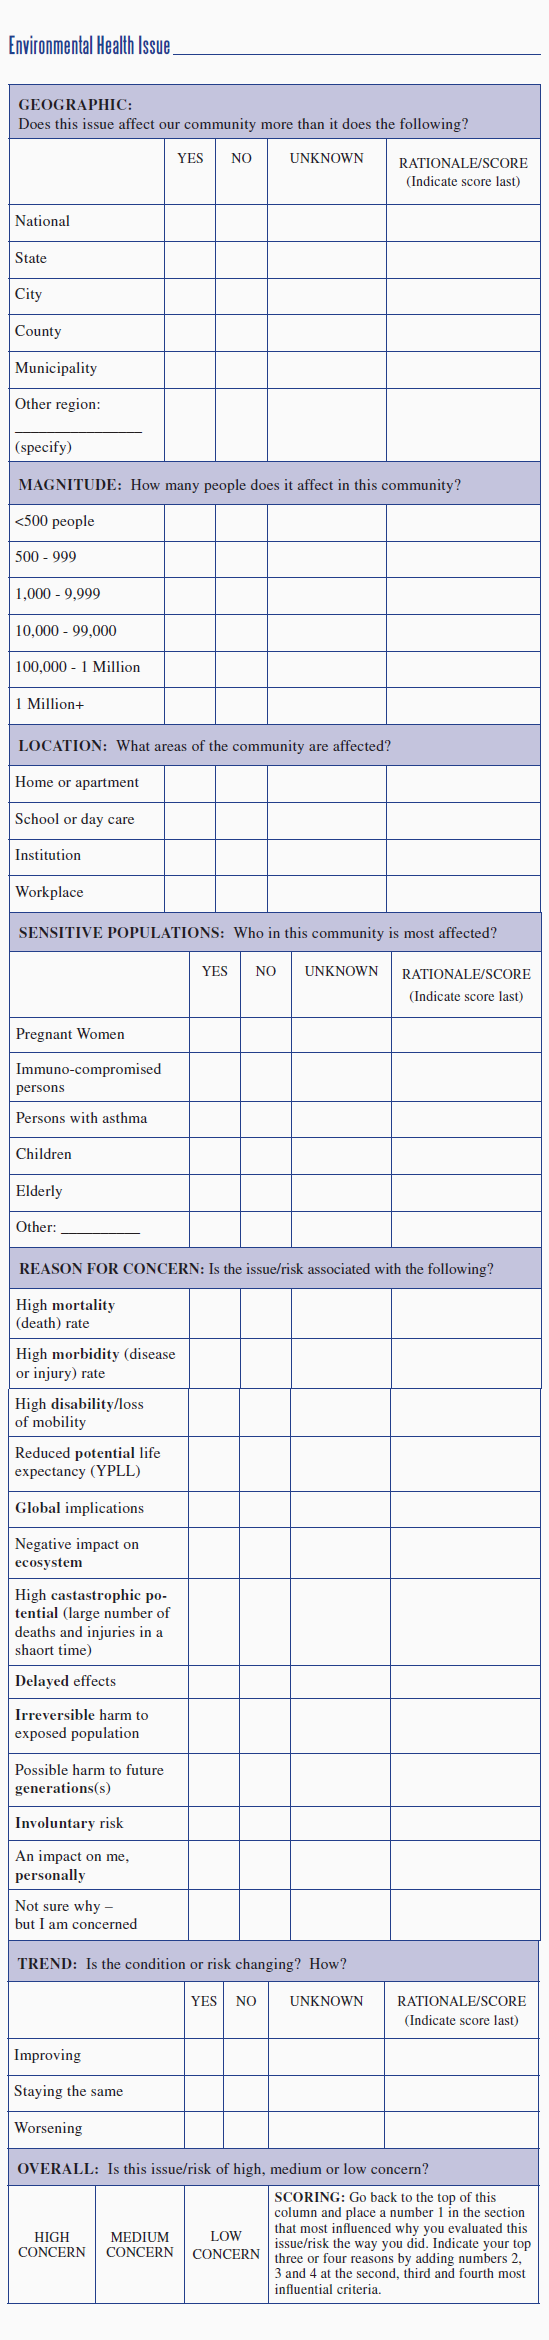 Environmental Health Issue Raking Worksheet chart